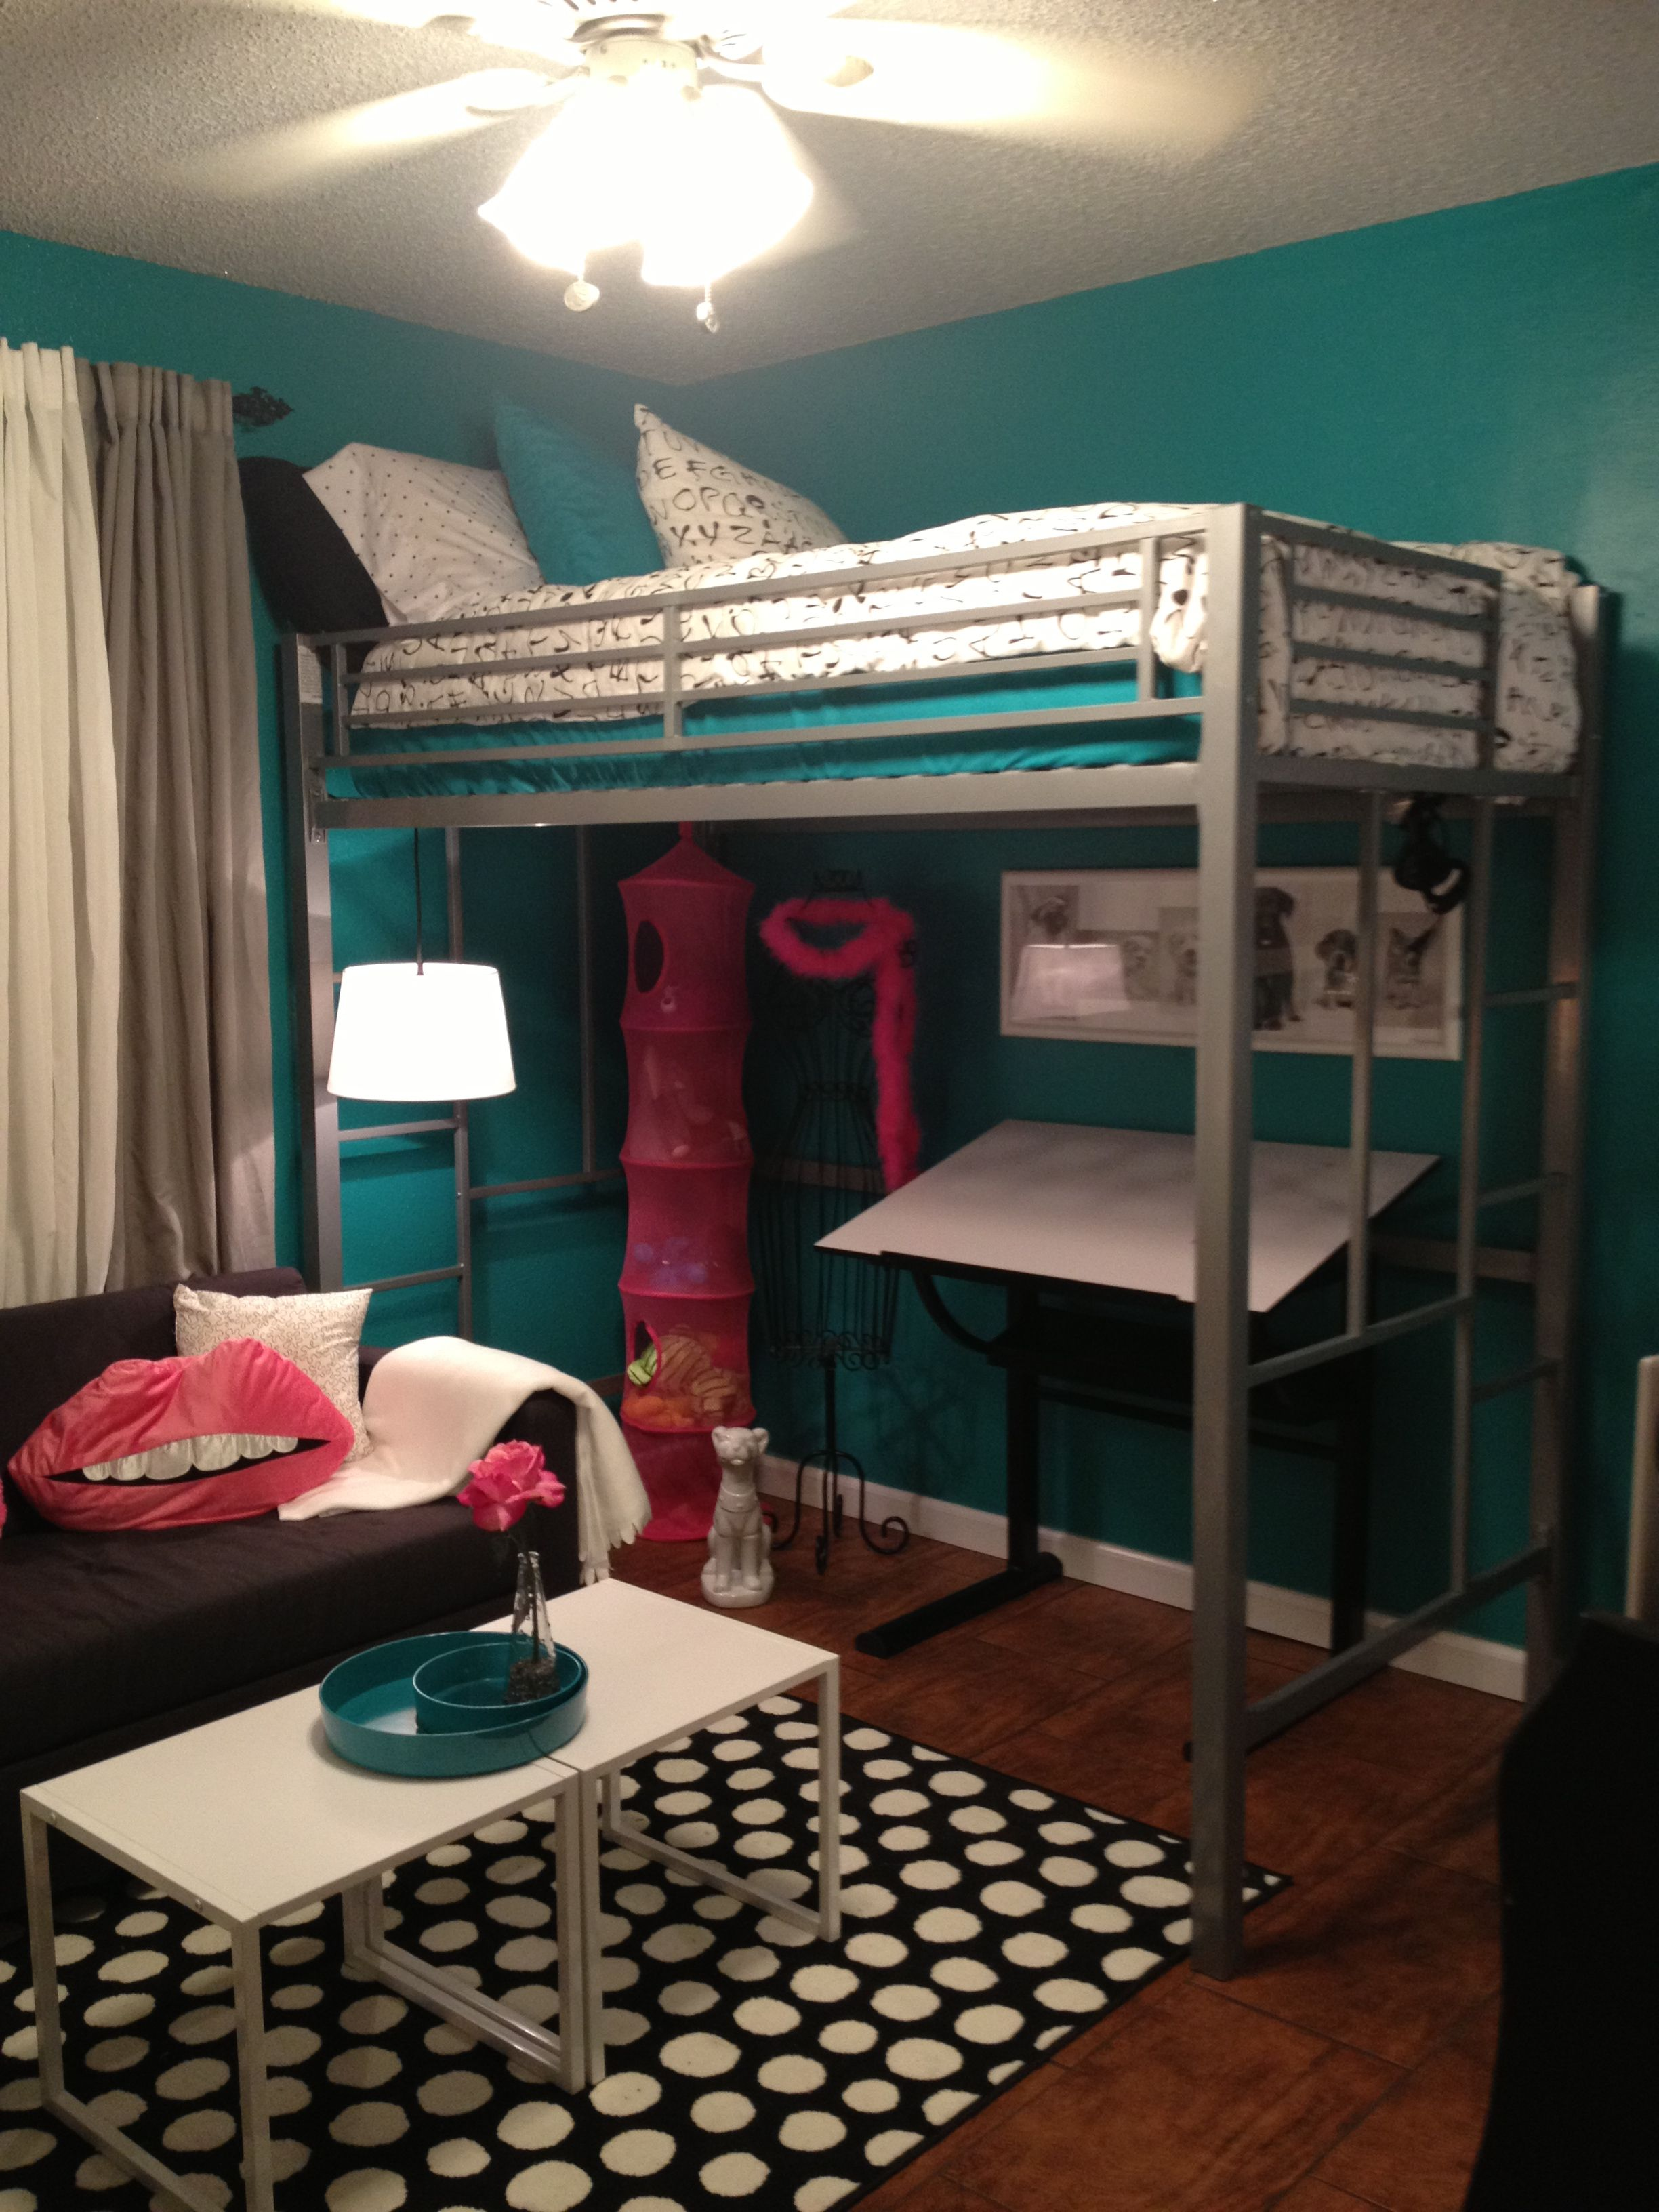 Teen room tween room bedroom idea loft bed black and for Tween girl room decor